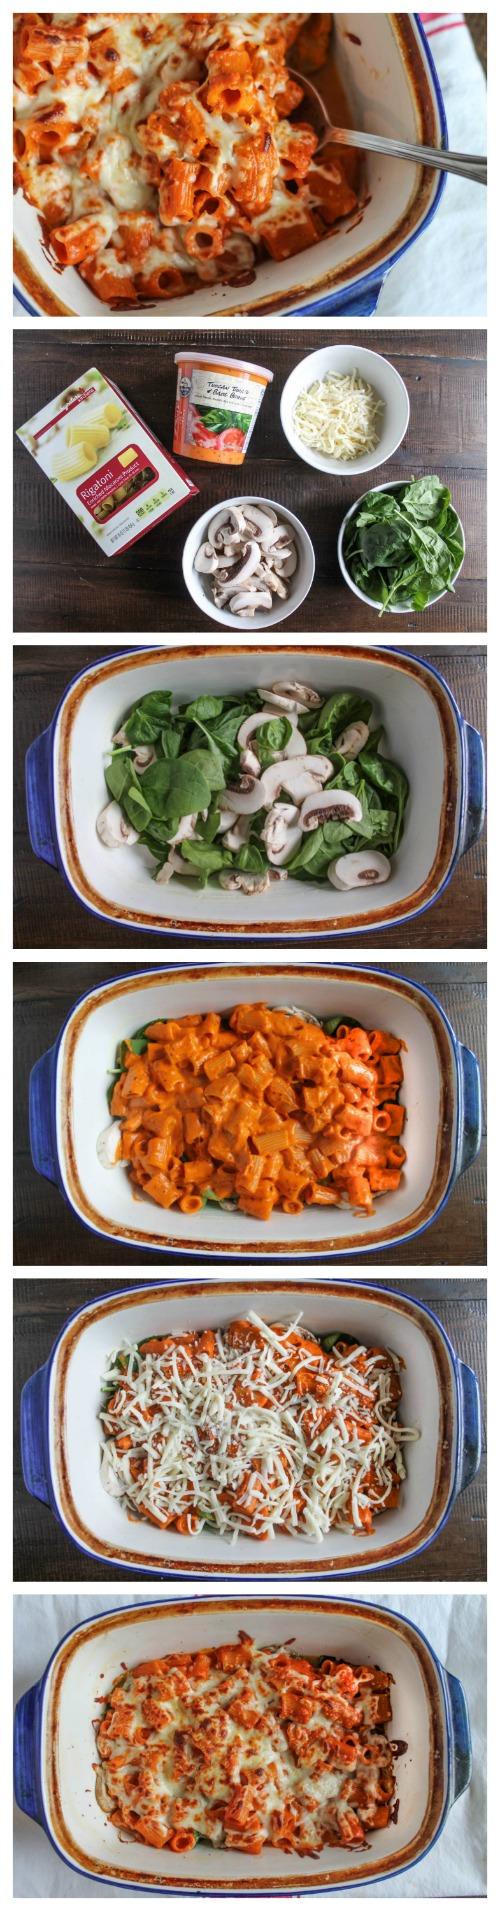 Veggie Pasta Bake Collage